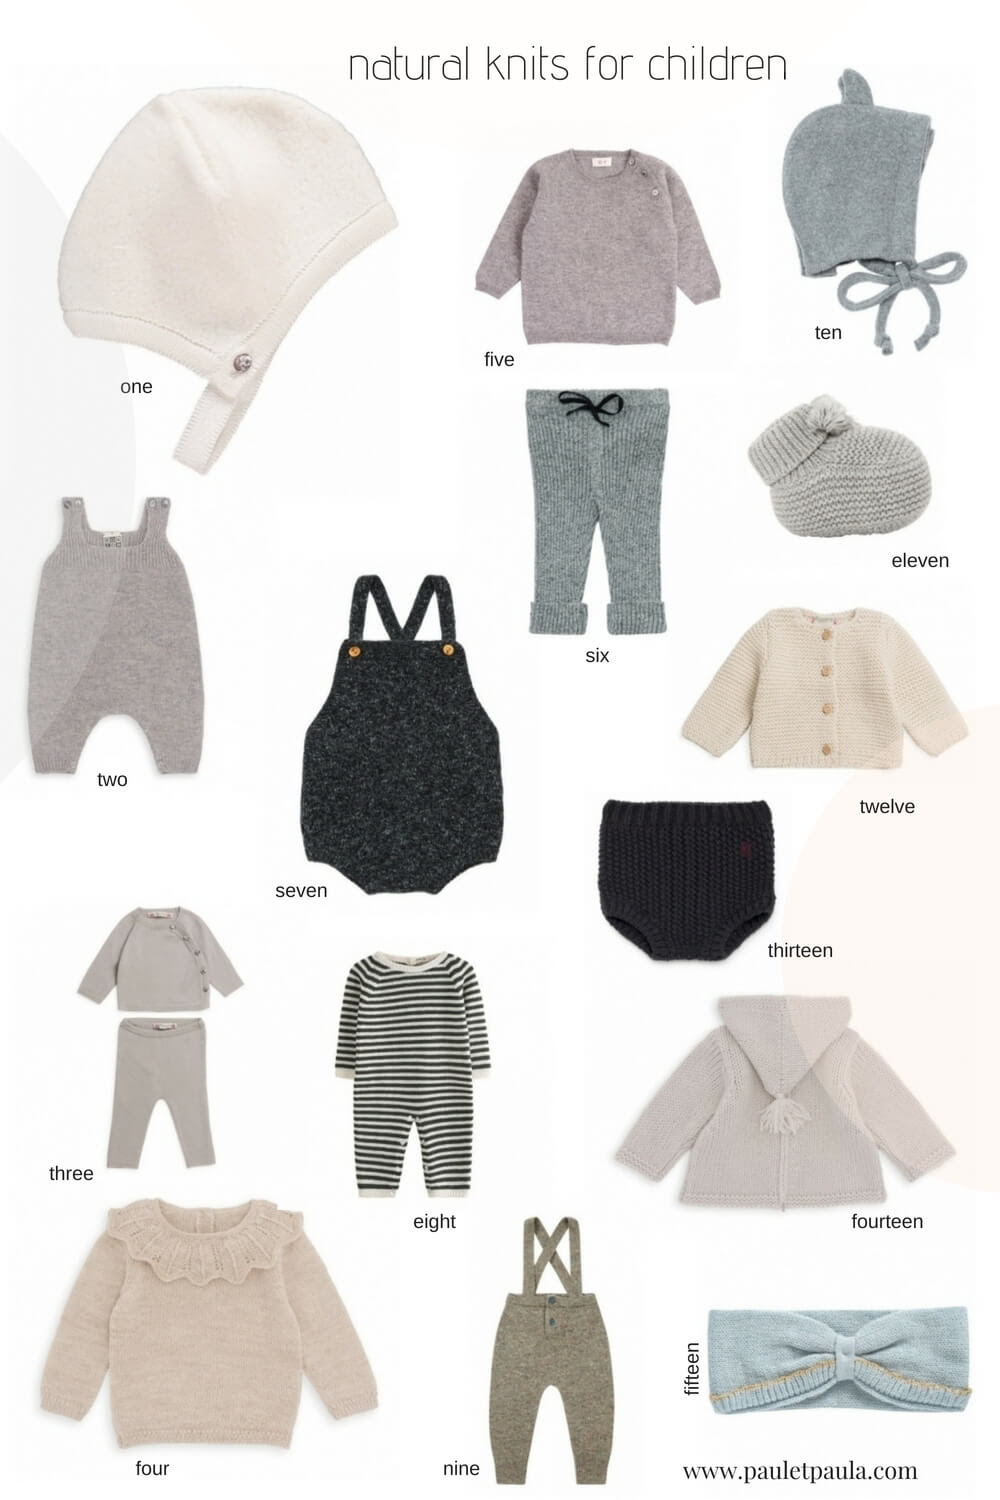 The best natural knits for children!